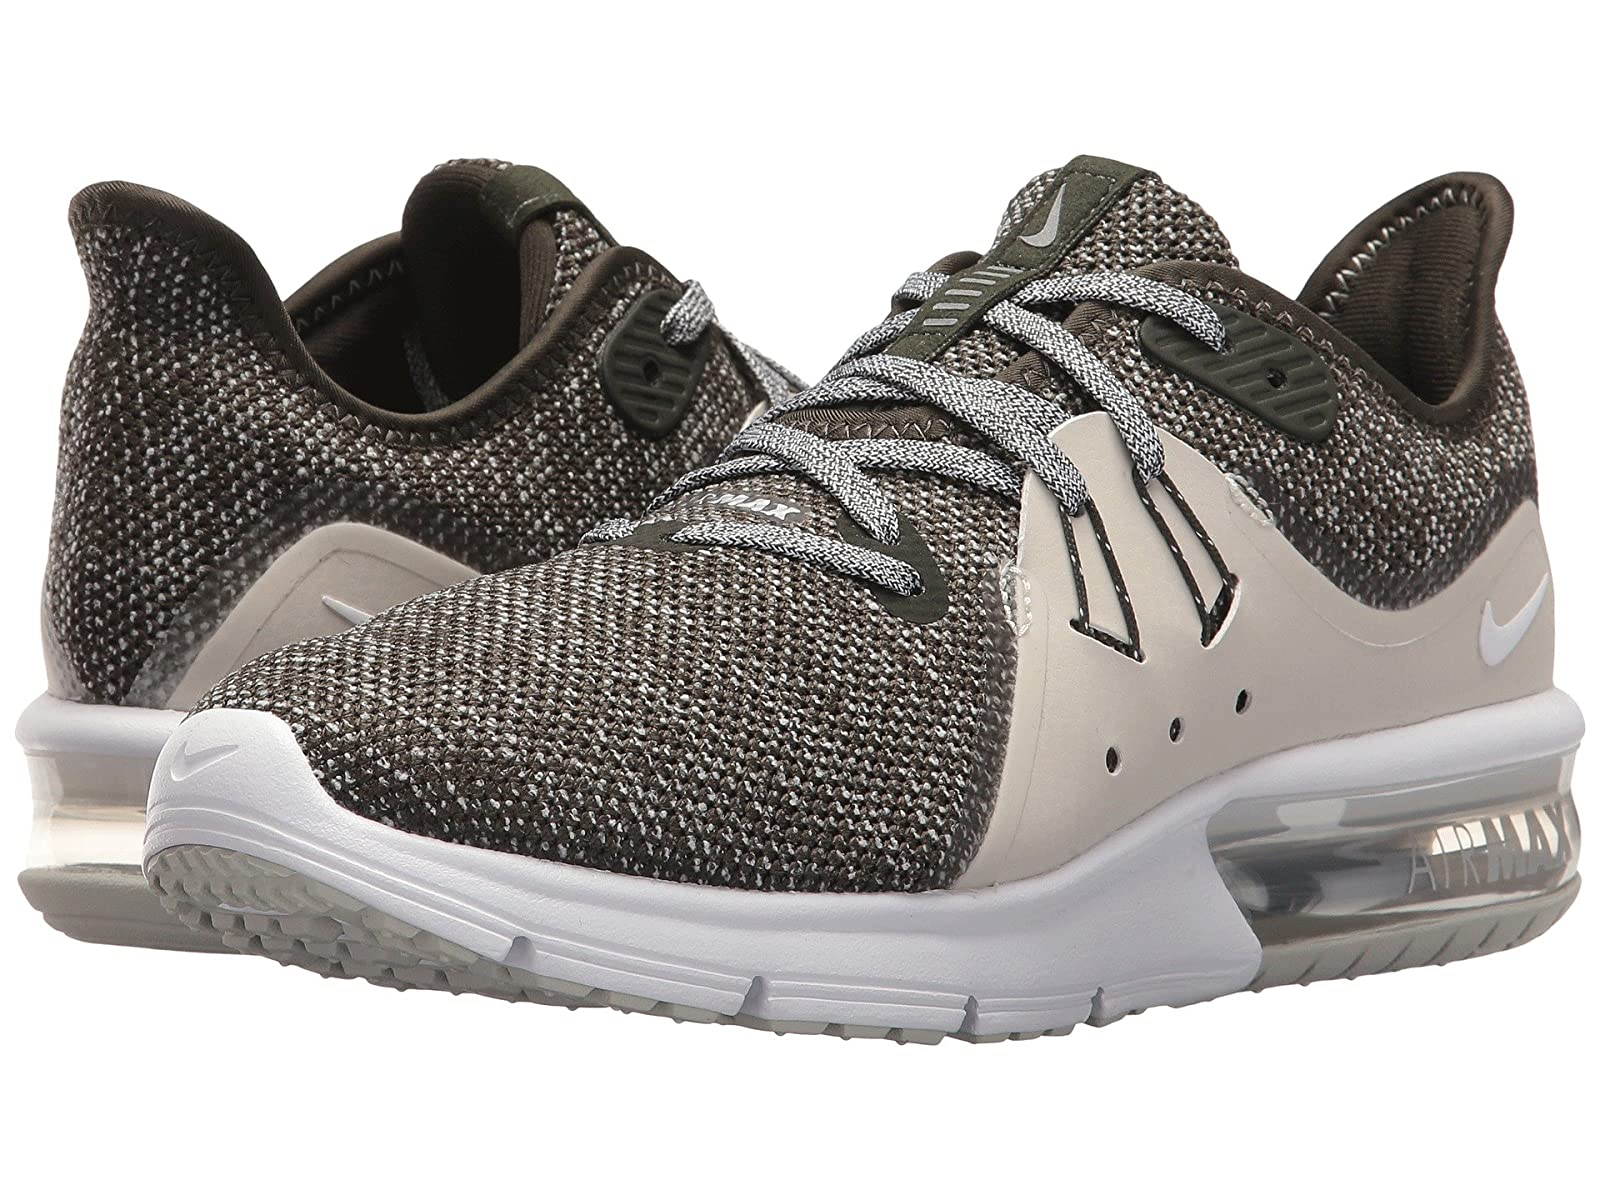 Nike Air Max Sequent 3Cheap and distinctive eye-catching shoes